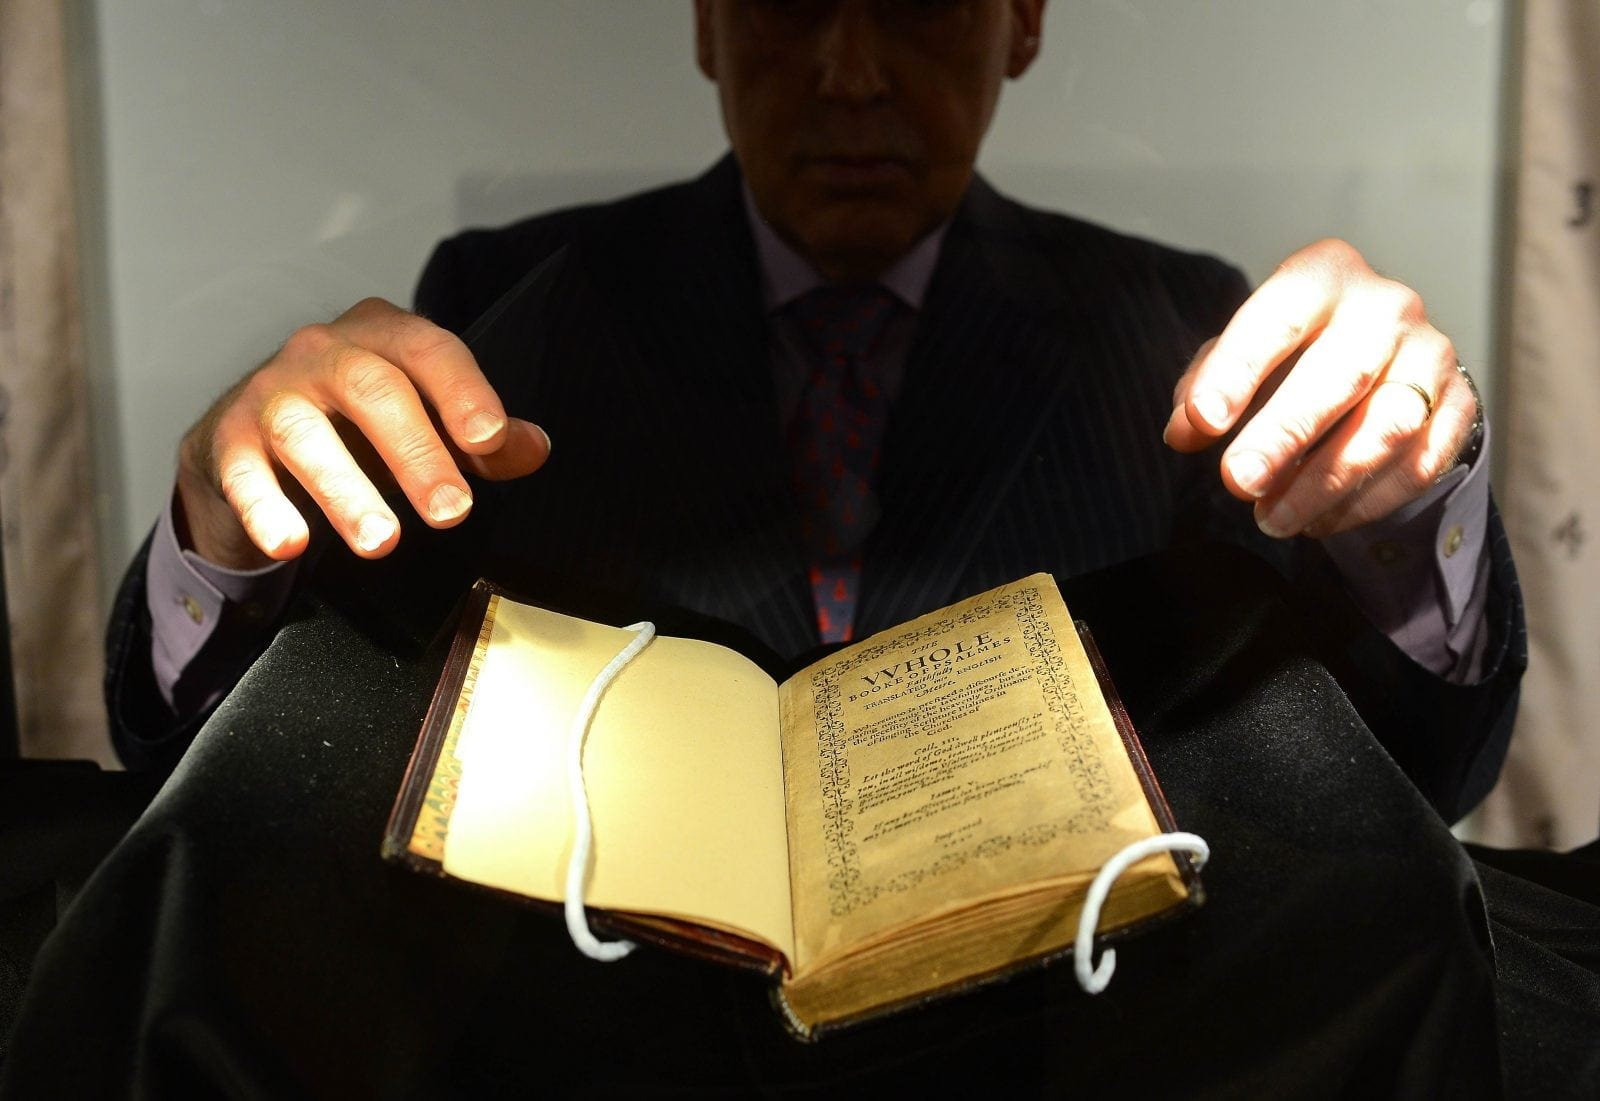 World's most expensive book sells for $14 mn